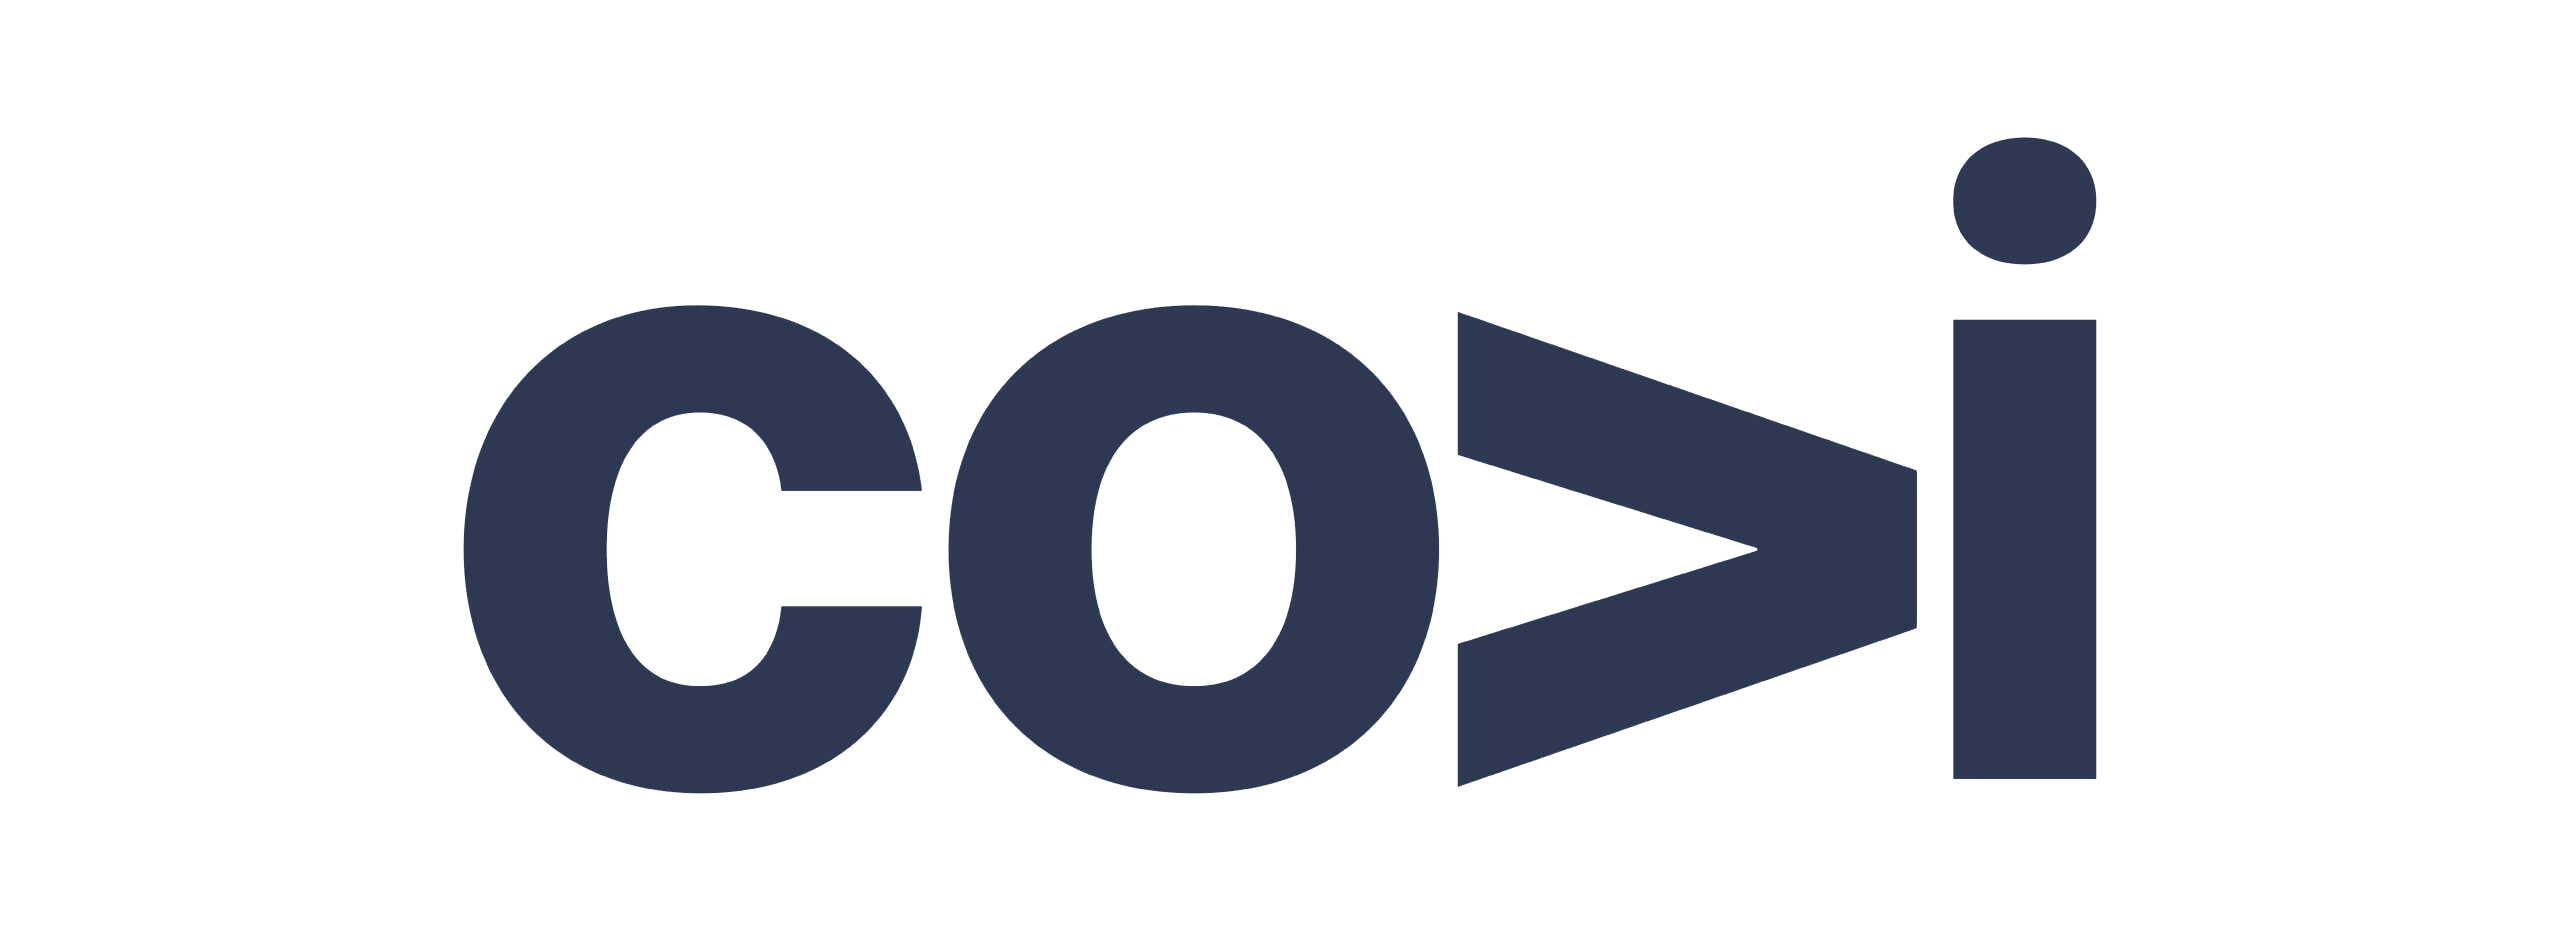 Covi-Logo-1-scaled